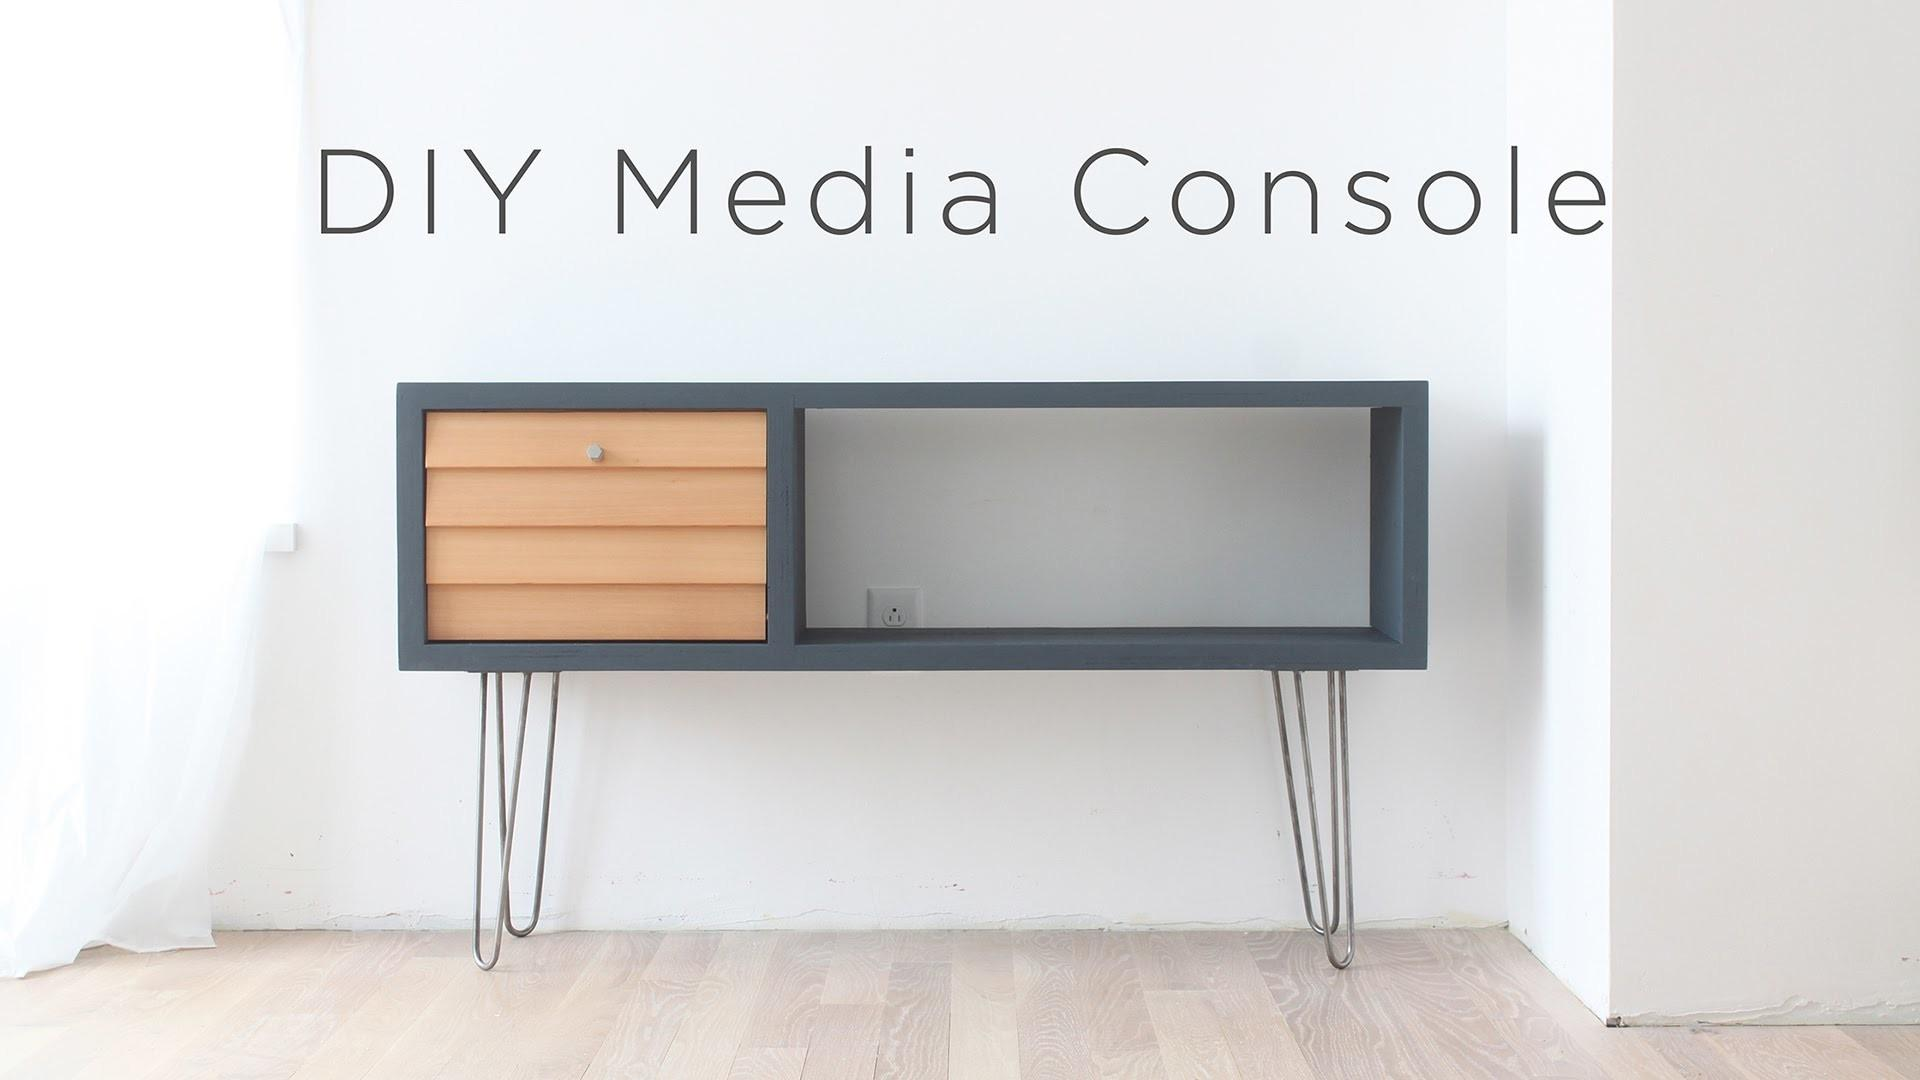 Diy Media Console Mid Century Modern Inspired